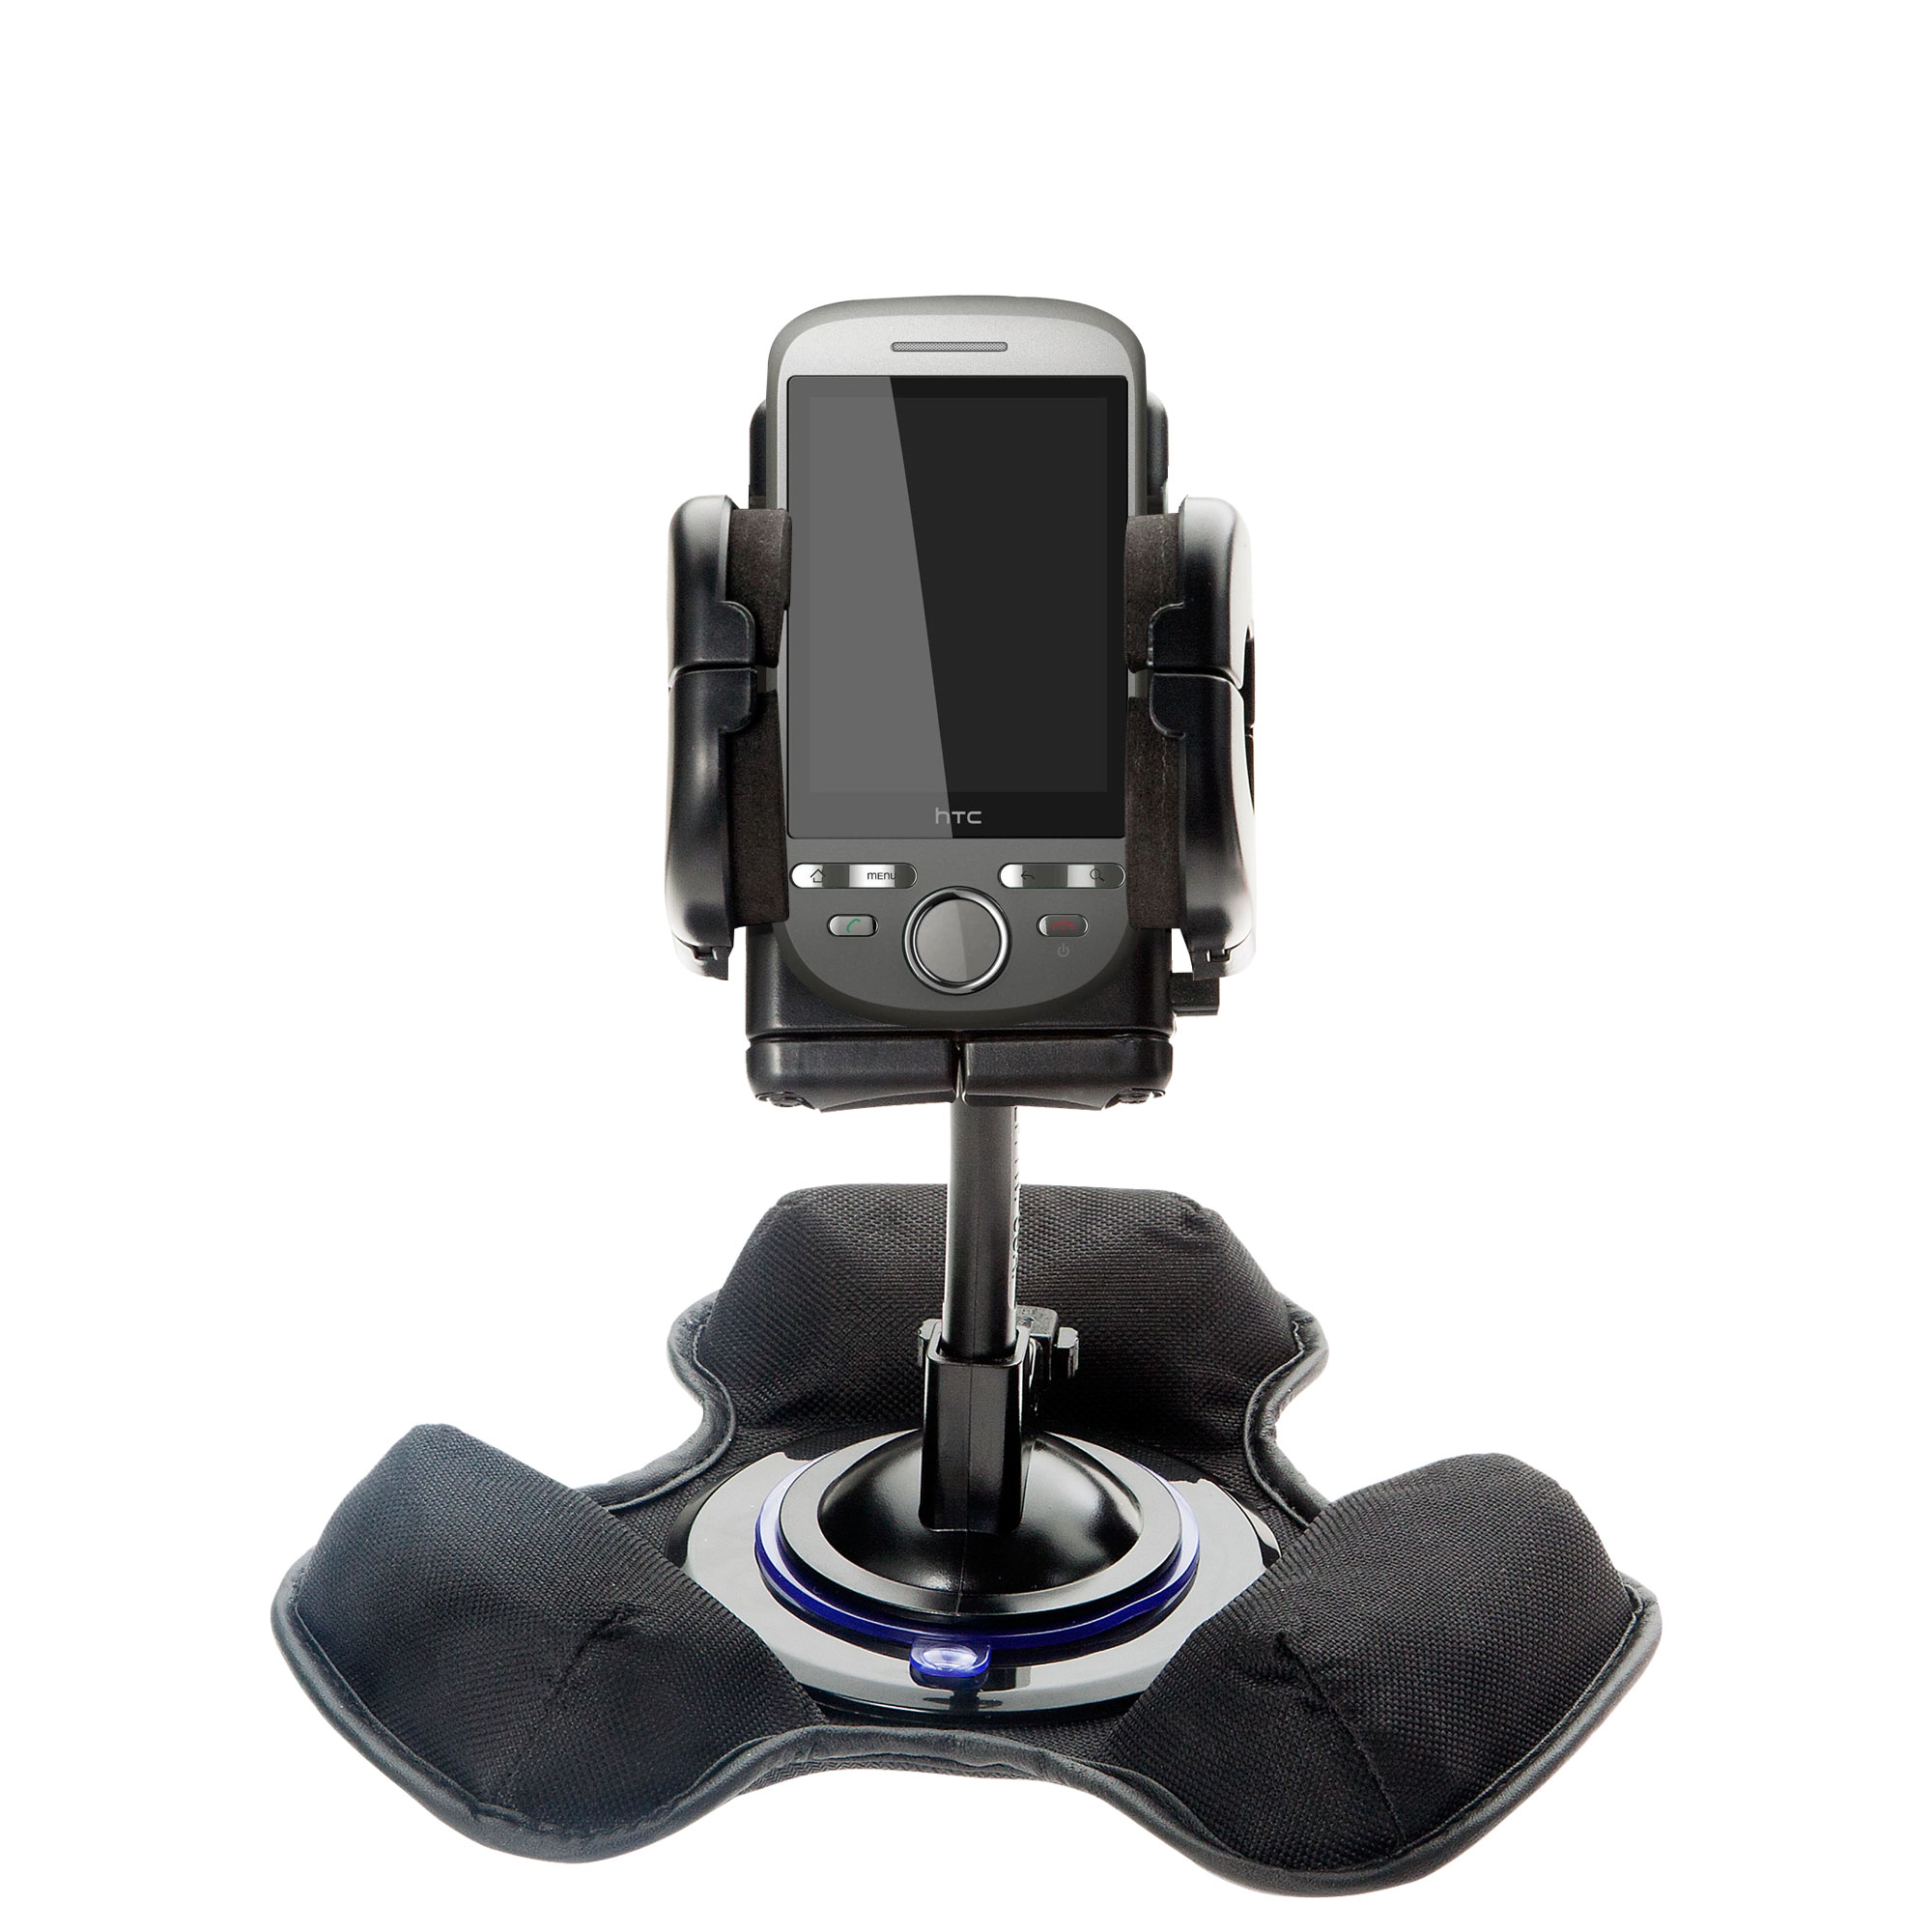 Dash and Windshield Holder compatible with the HTC Tattoo